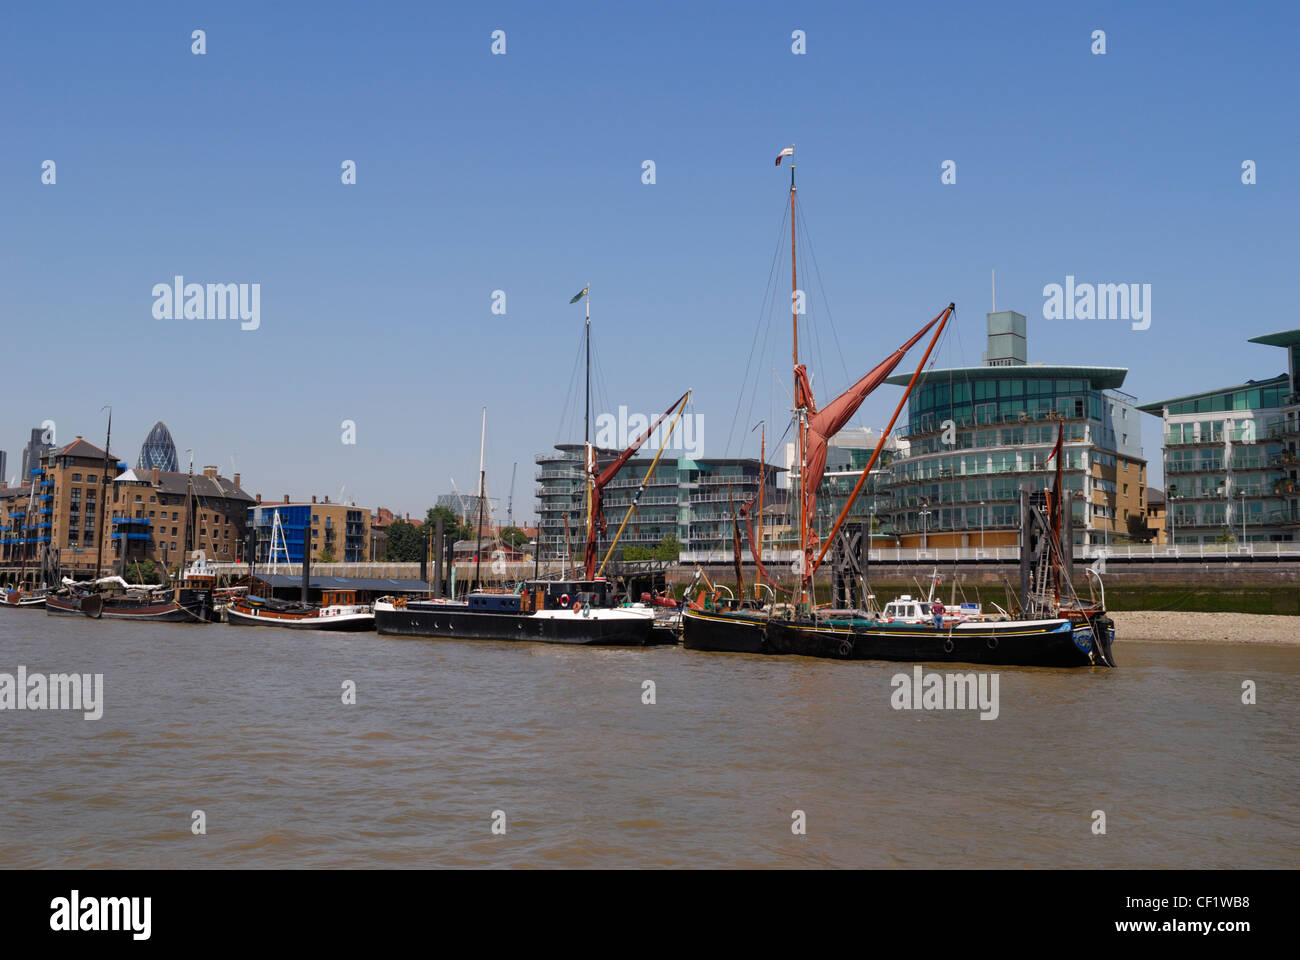 Old Thames sailing barges beside modern, luxury apartments on the river Thames. - Stock Image